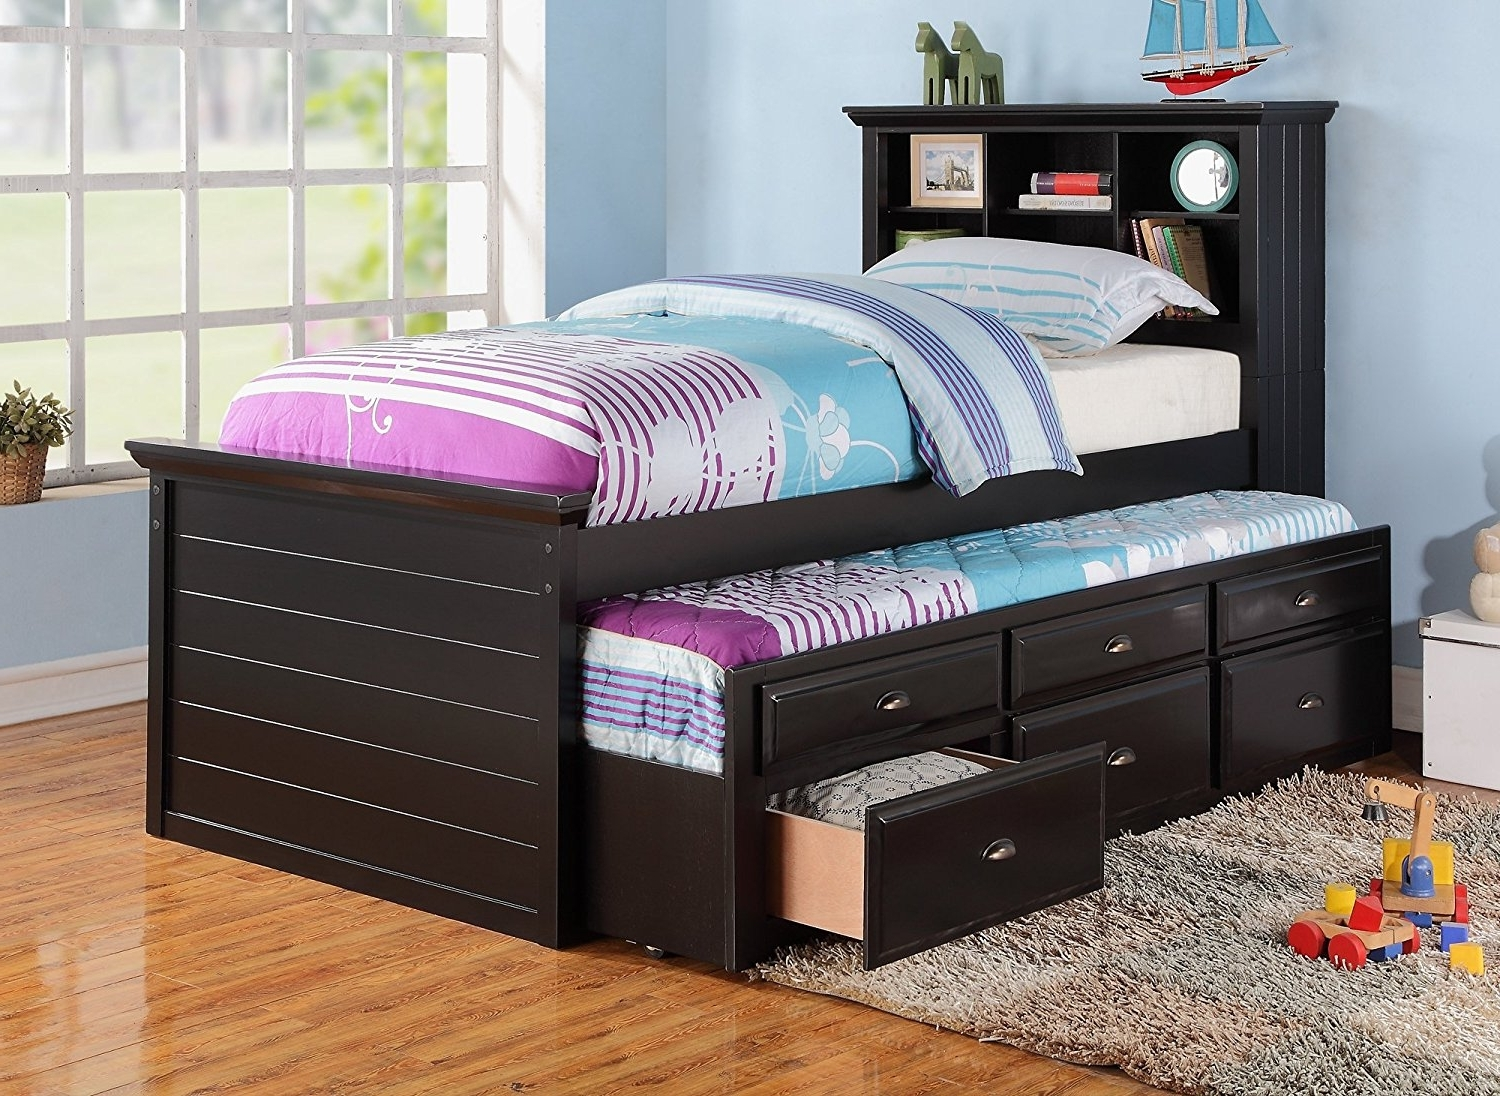 Twin Bed Bookcases With Well Liked Amazon: Black Captain Twin Bookcase Bed W/trundle Bed And (View 5 of 15)